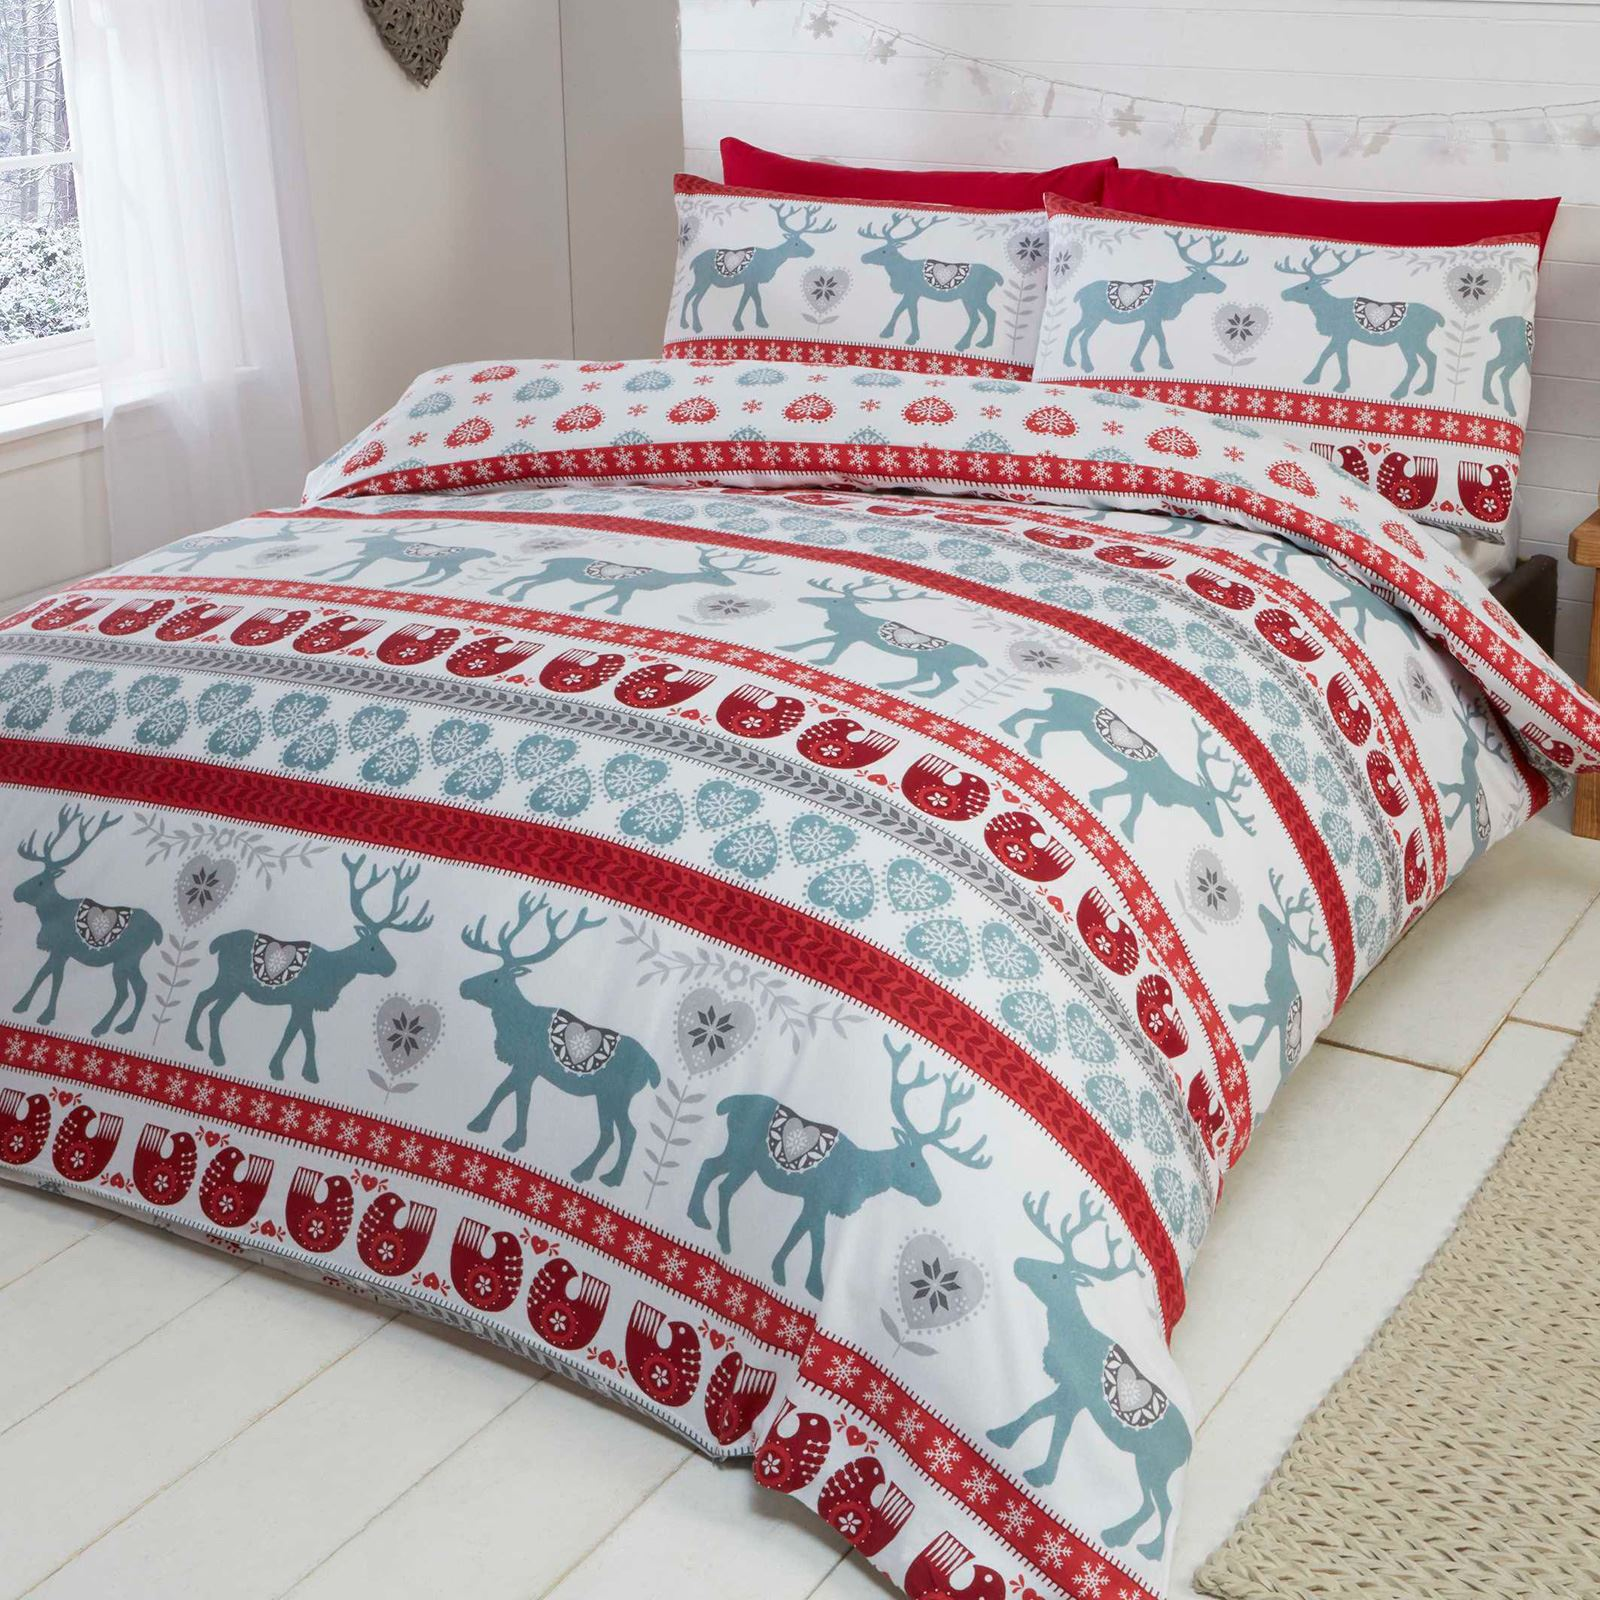 Christmas Festive Duvet Cover Sets Bedding Adults